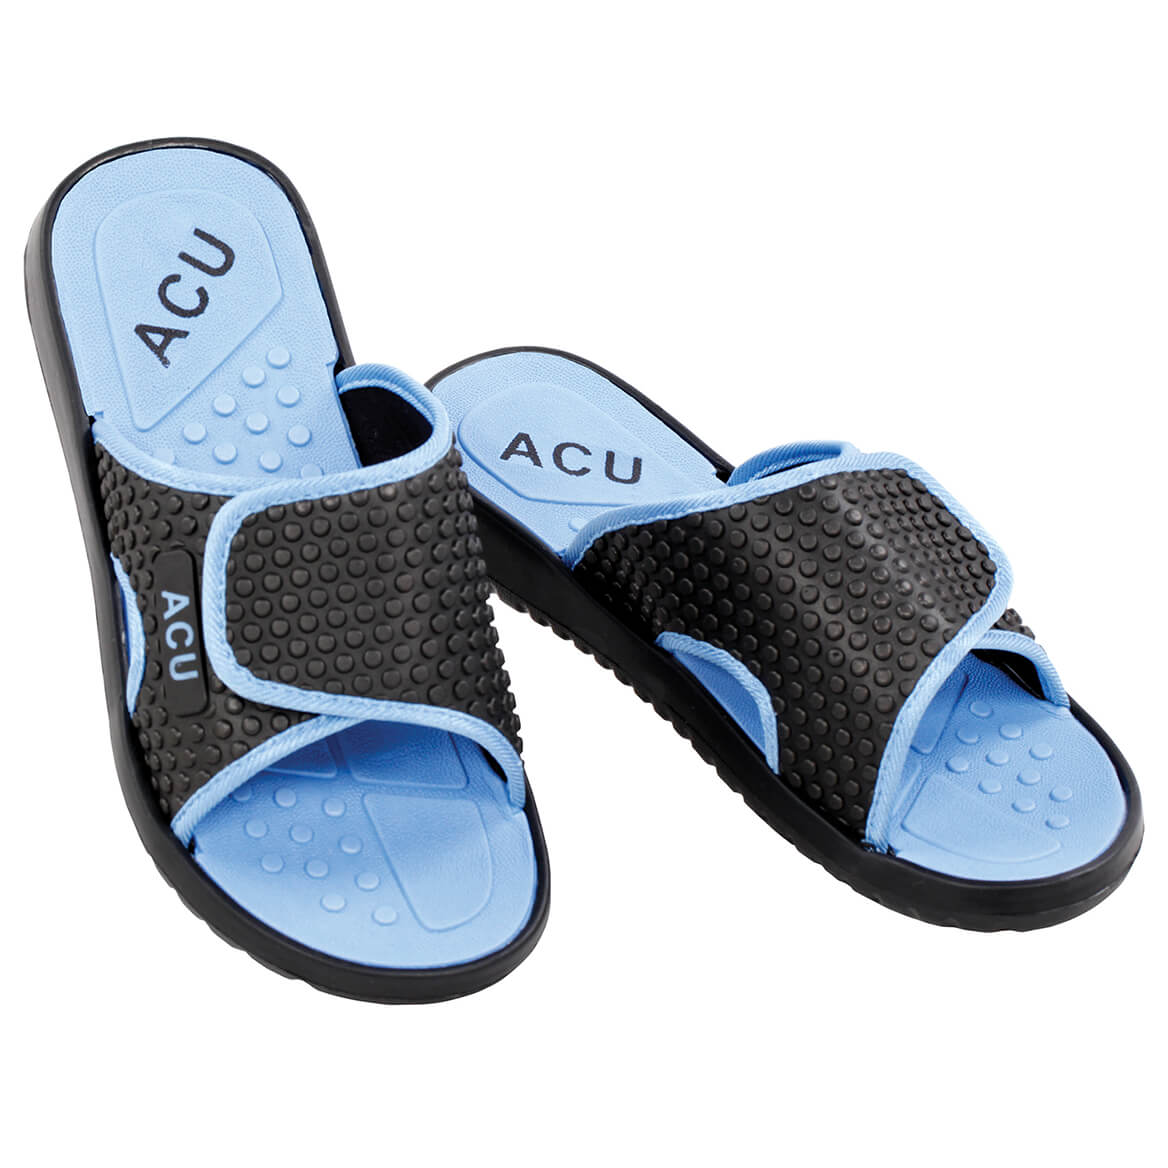 Cool & Comfy Massaging Slides-370023